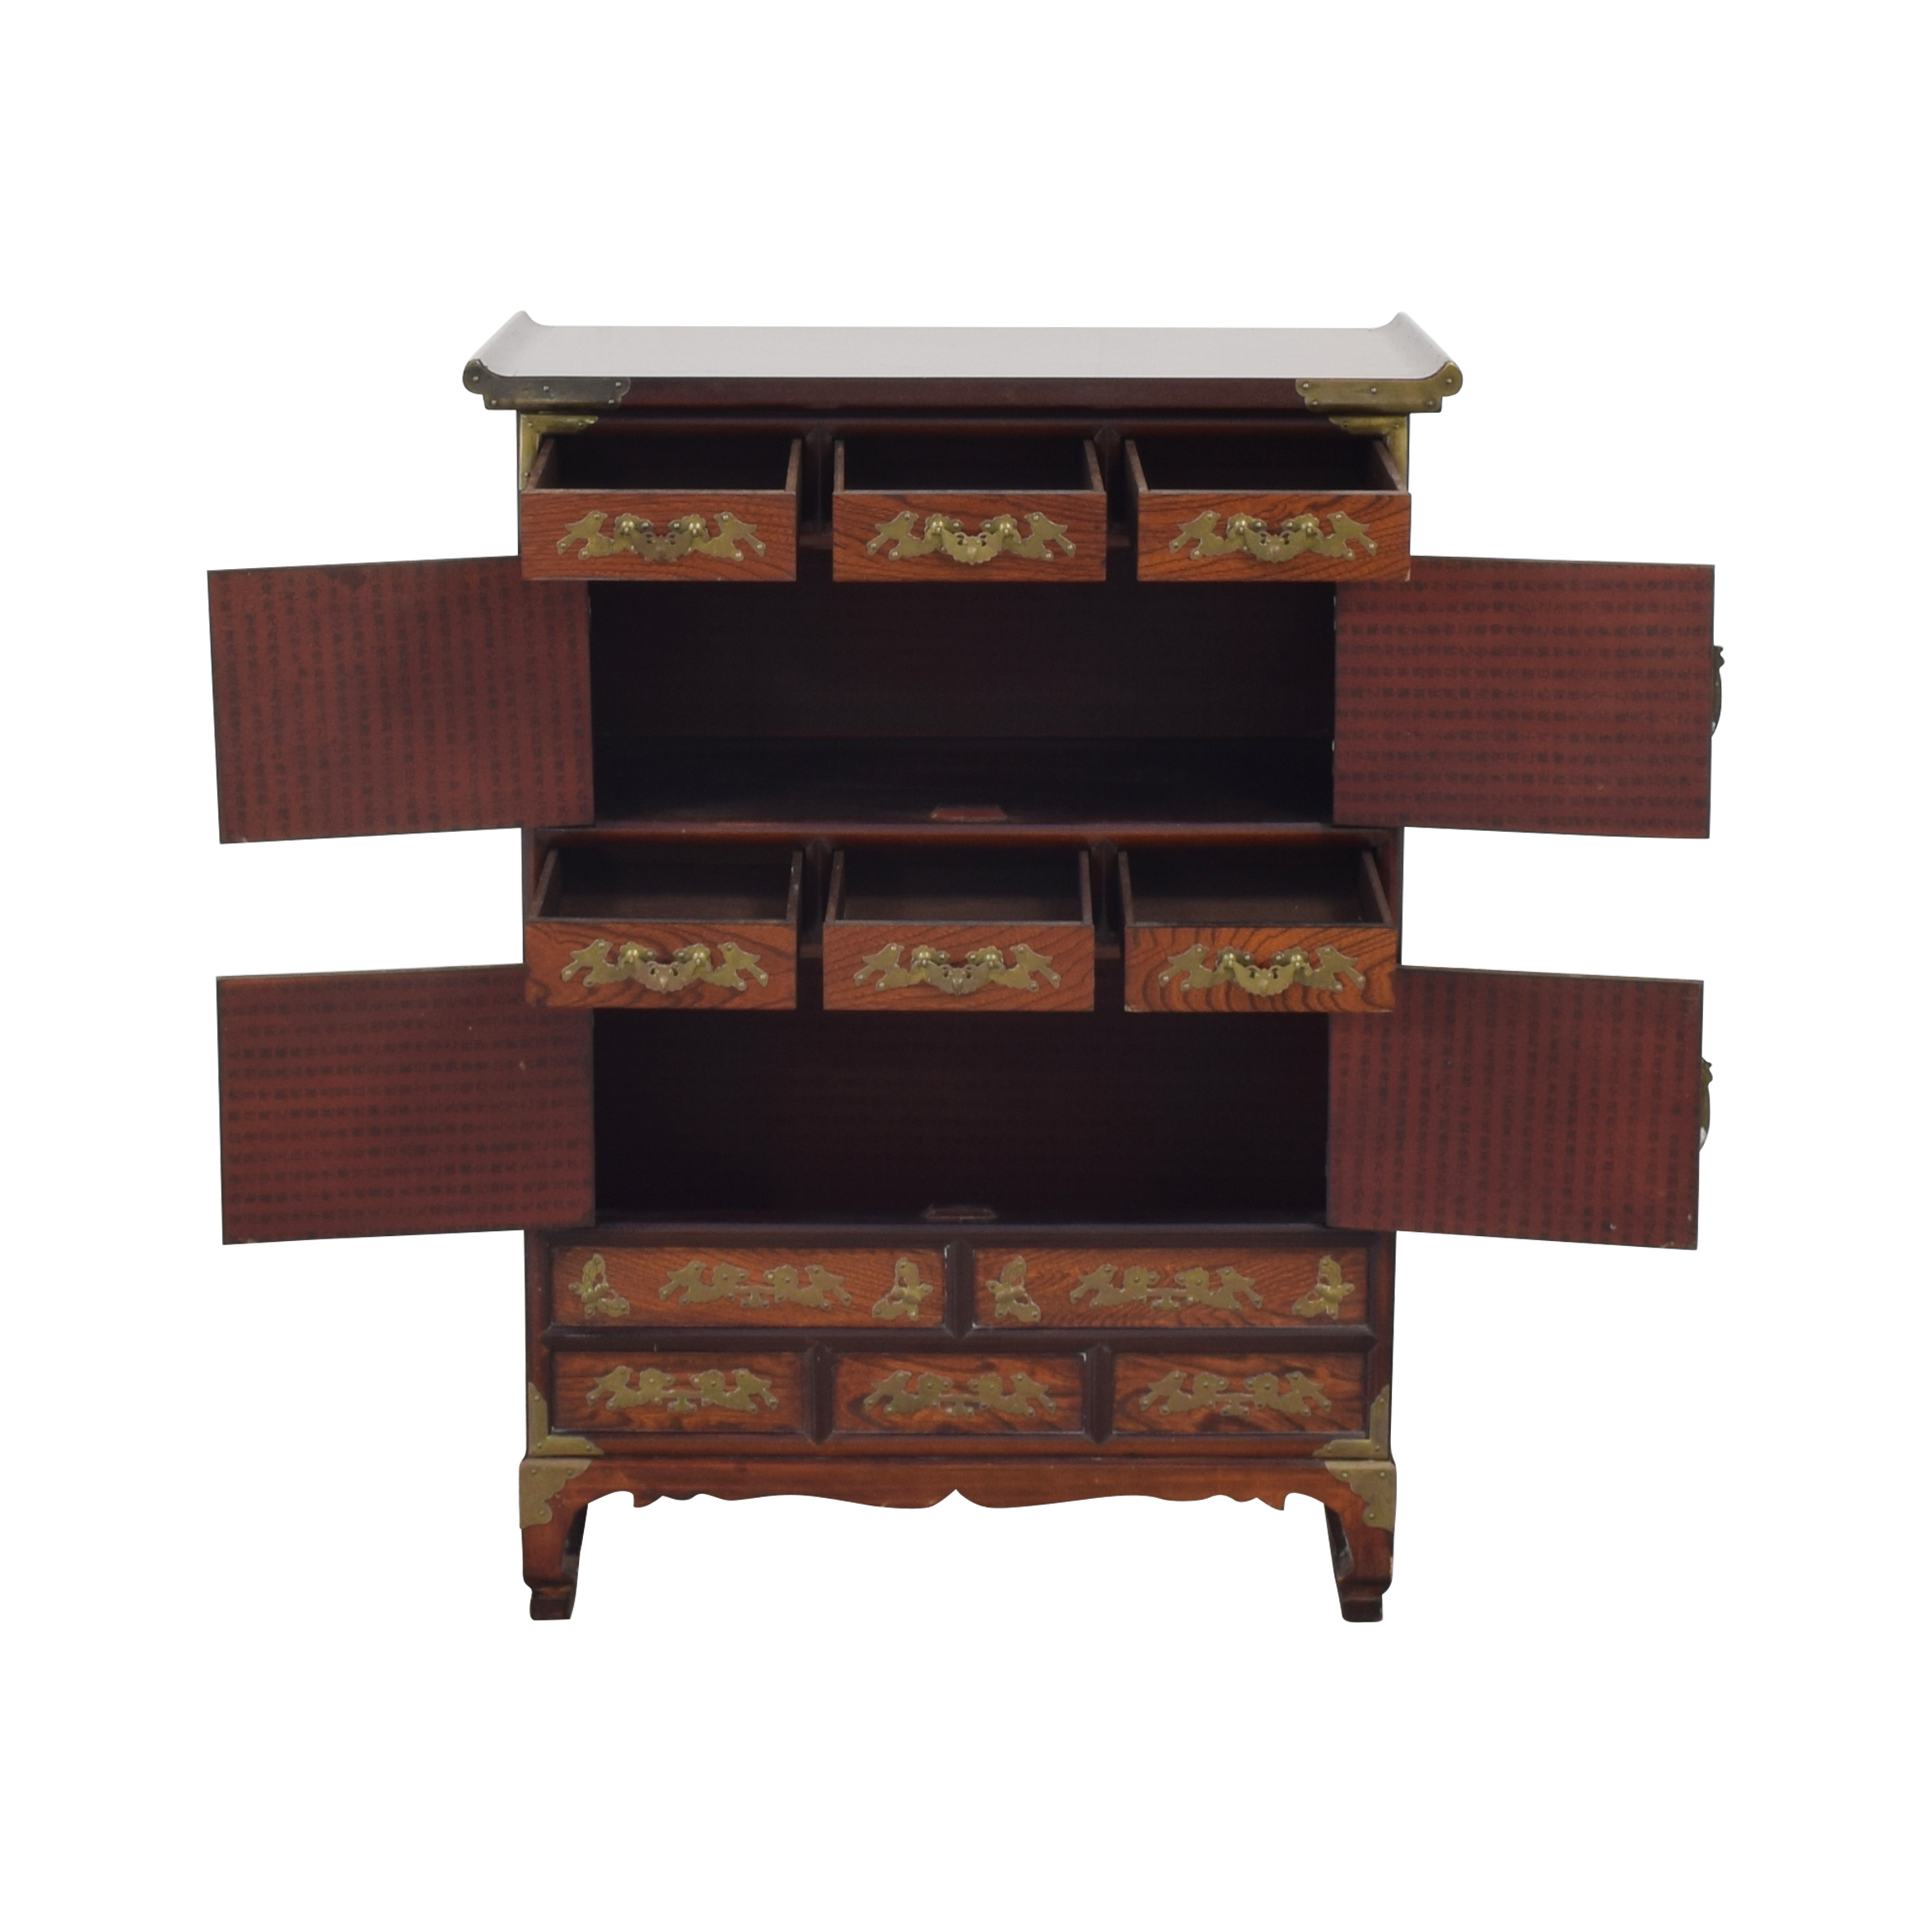 Chinese Apothecary Cabinet on sale